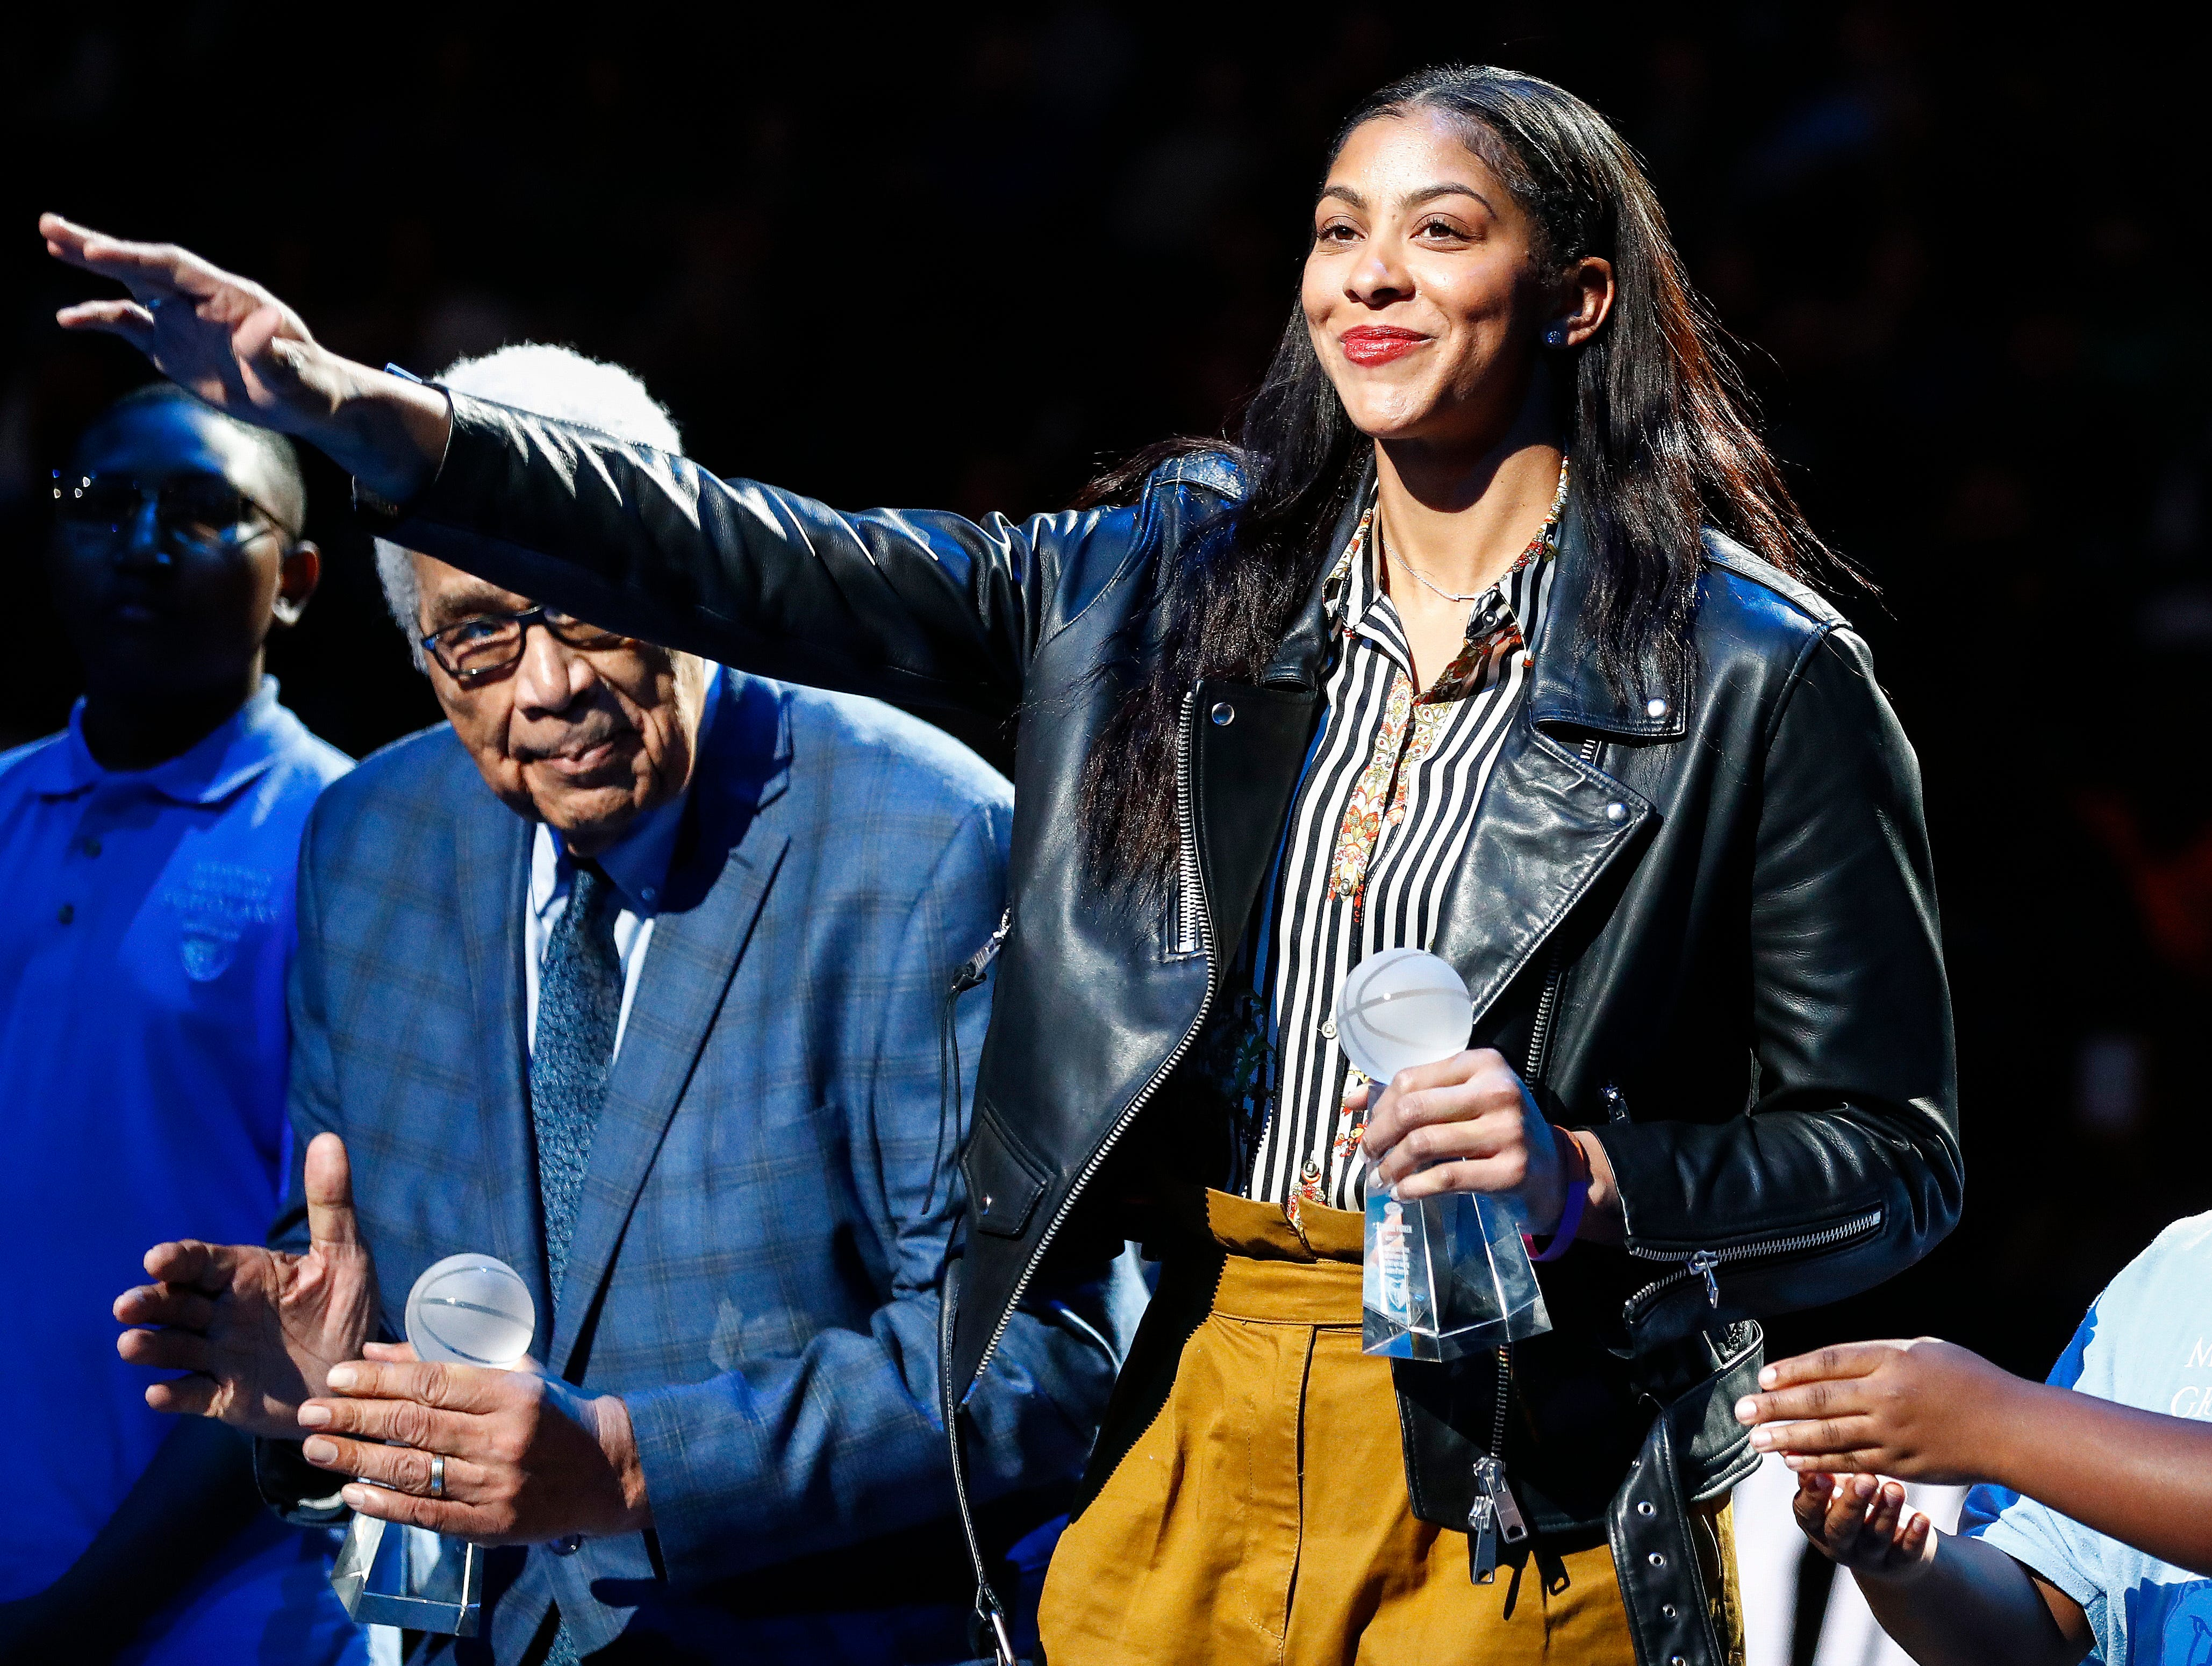 Former WNBA player Candace Parker receives the 14th Annual National Civil Rights Museum Sports Legacy Award before the Memphis Grizzlies take on the New Orleans Pelicans at the FedExForum in Memphis, Tenn., Monday, January 21, 2019.